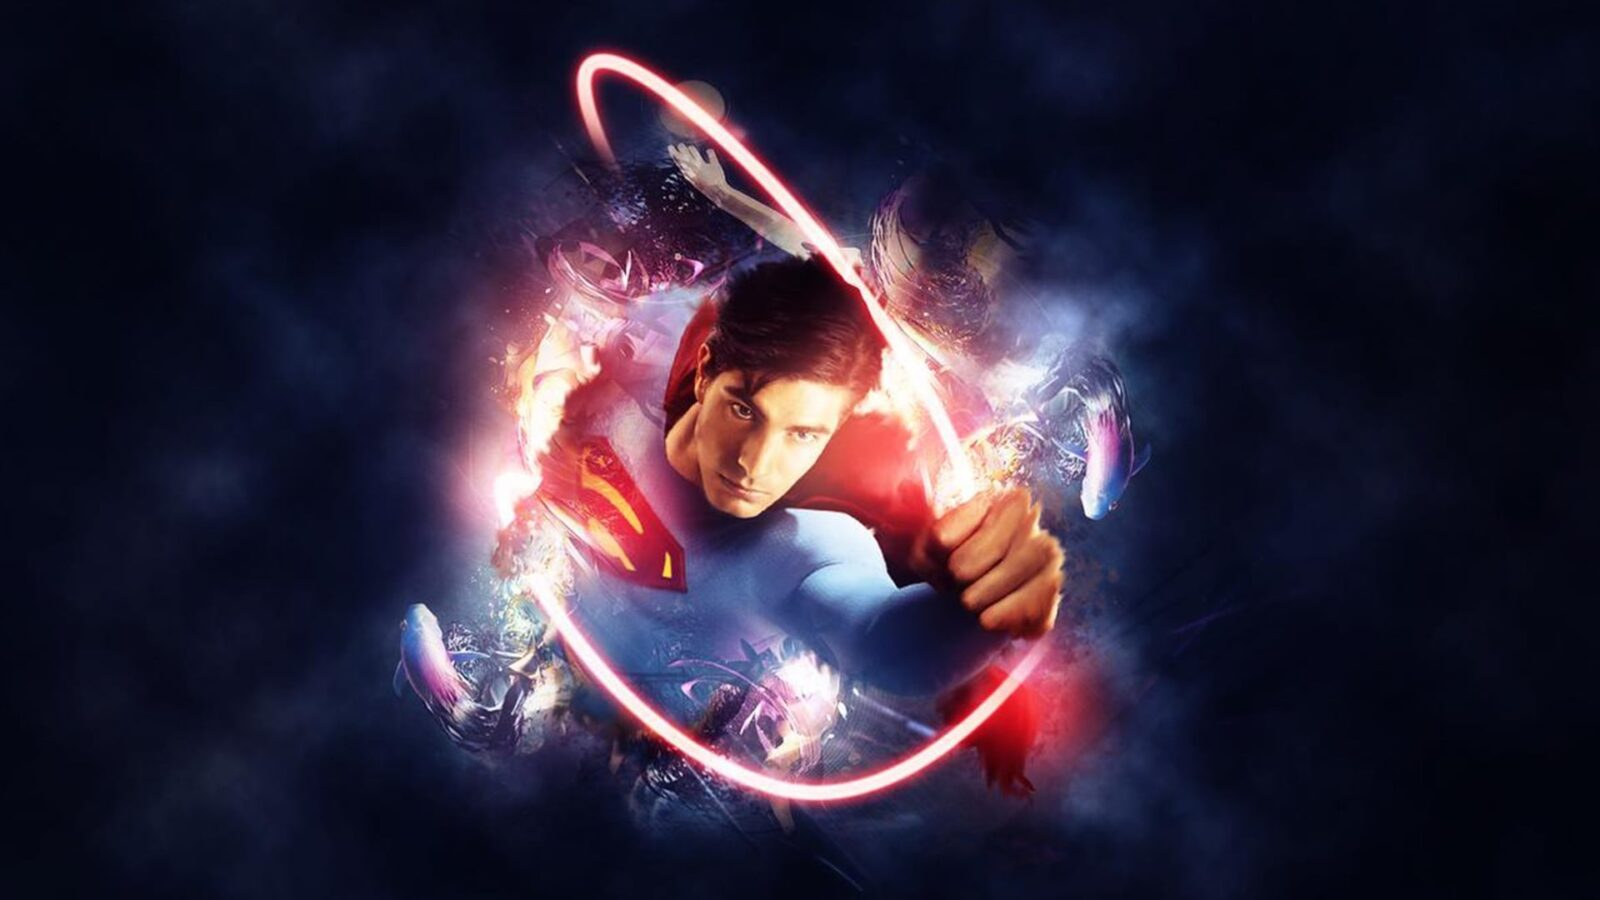 Brandon Routh art 1920x1080 wallpaper